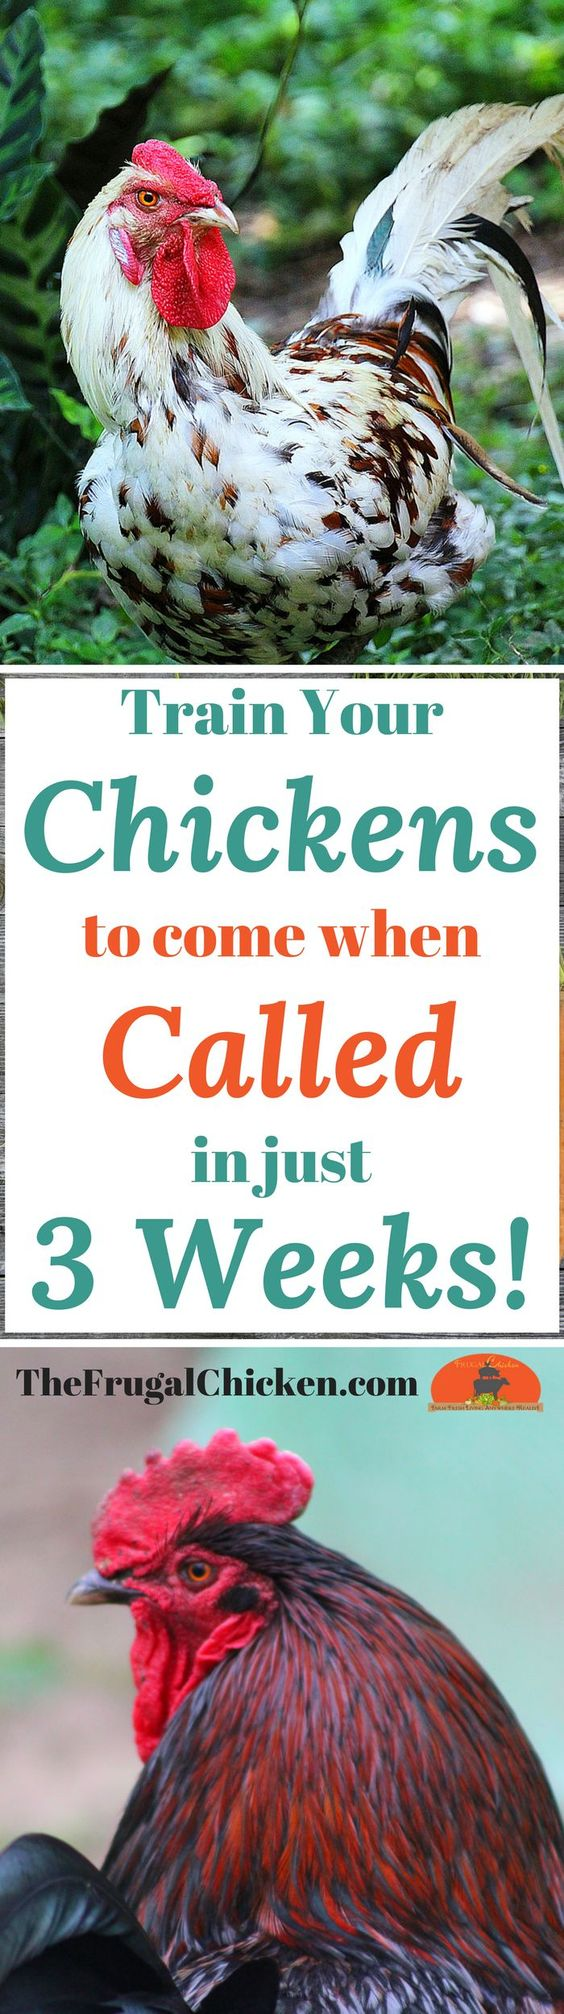 Got predators? Love how cute chickens are when they run? Teach your chickens to come when called - it's a great way to keep them safe when predators lurk!